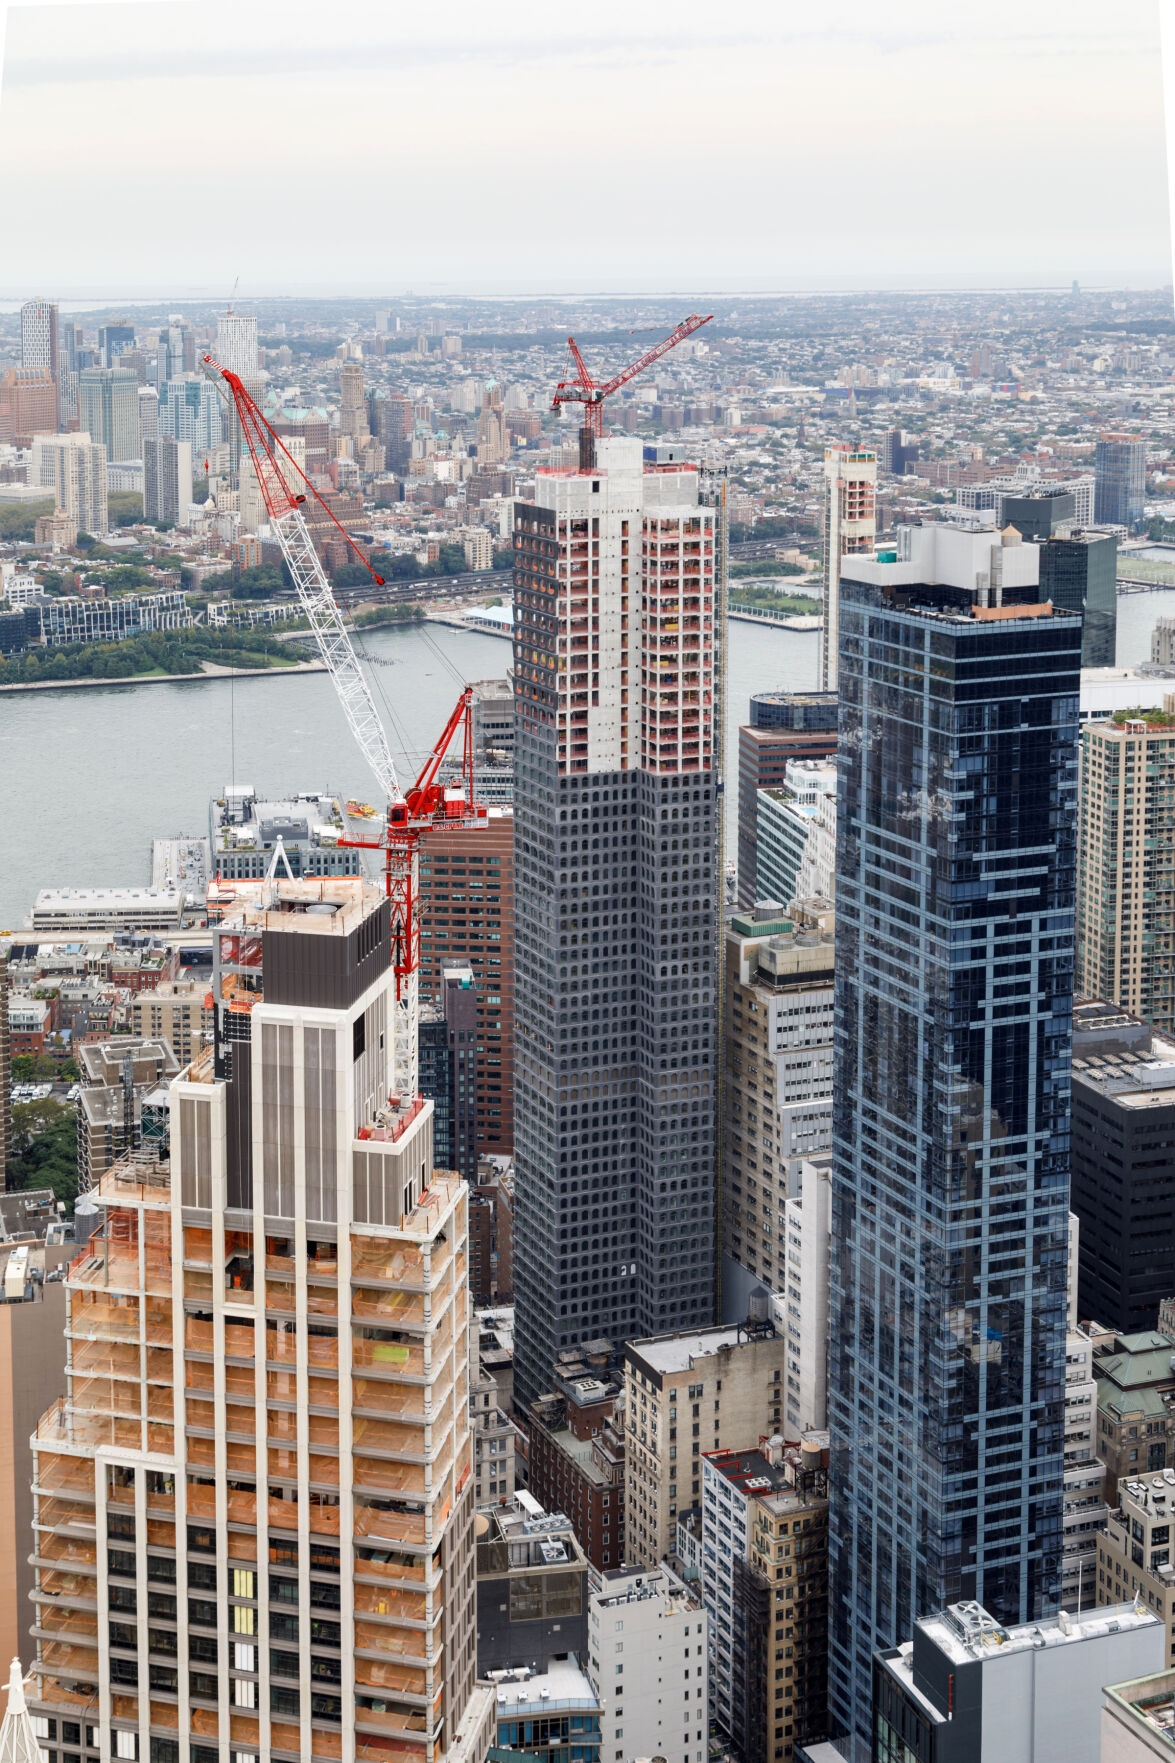 A residential tower under construction in lower Manhattan, 130 William, is open for virtual tours. (Stefano Ukmar/The New York Times)